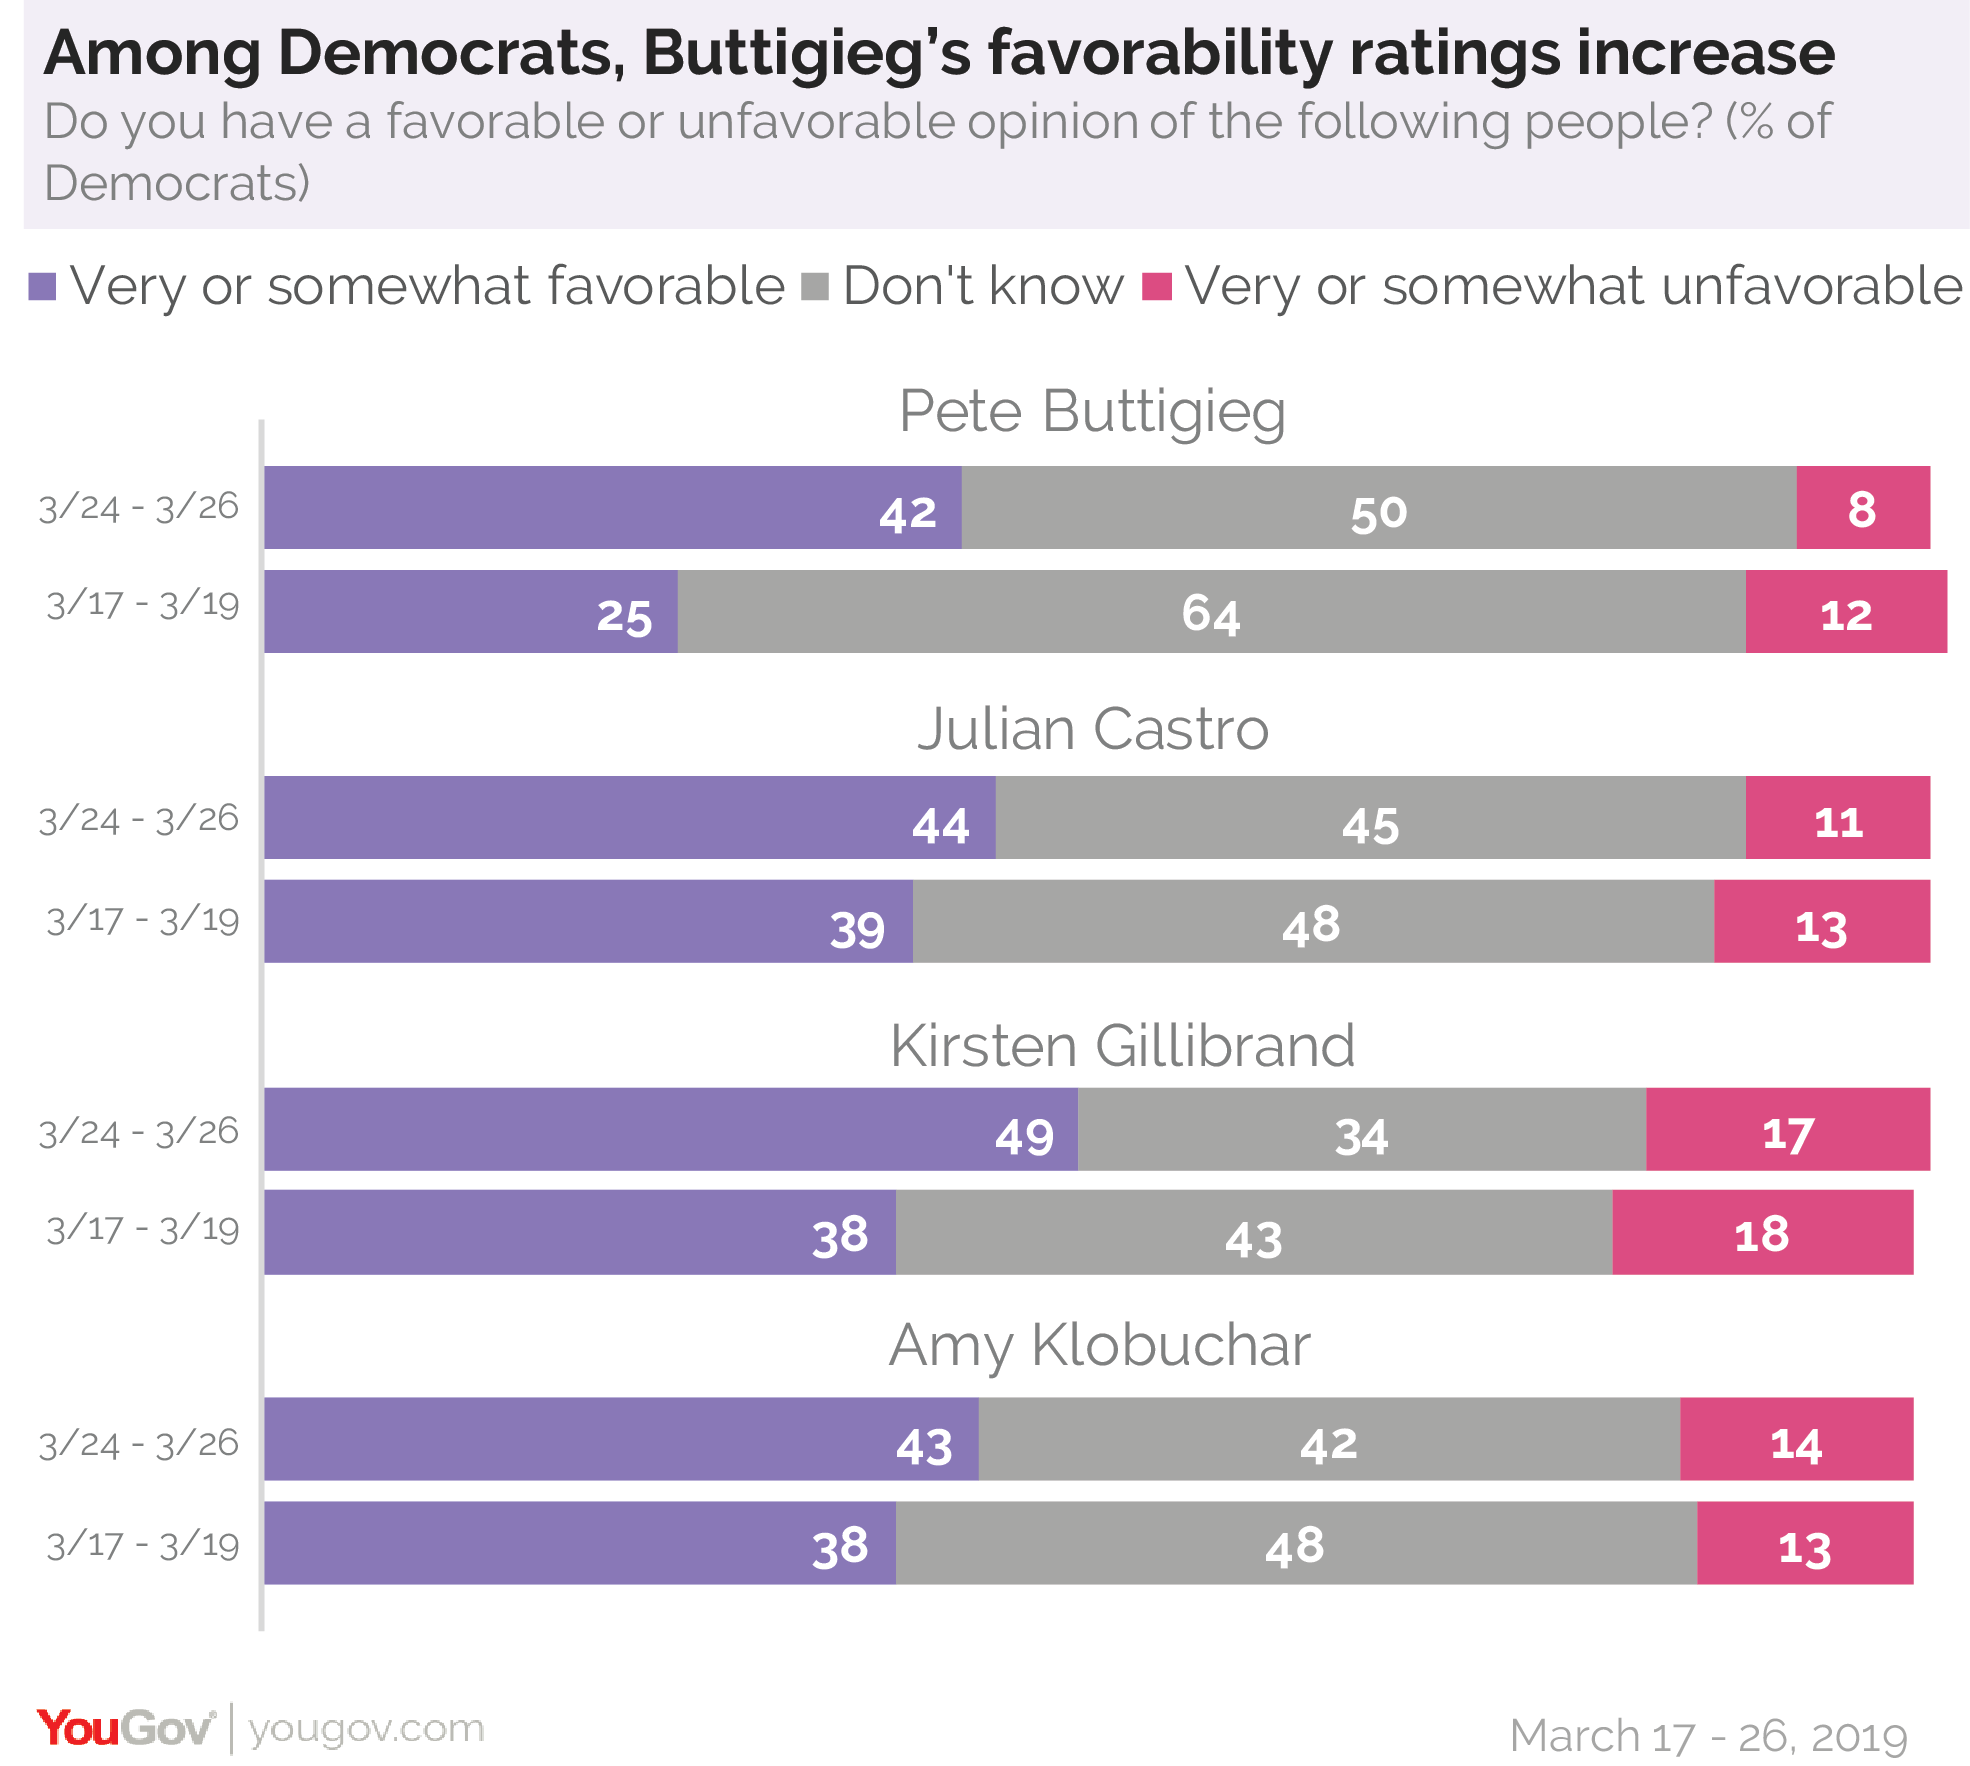 Among Democrats, Pete Buttigieg favorability ratings increase